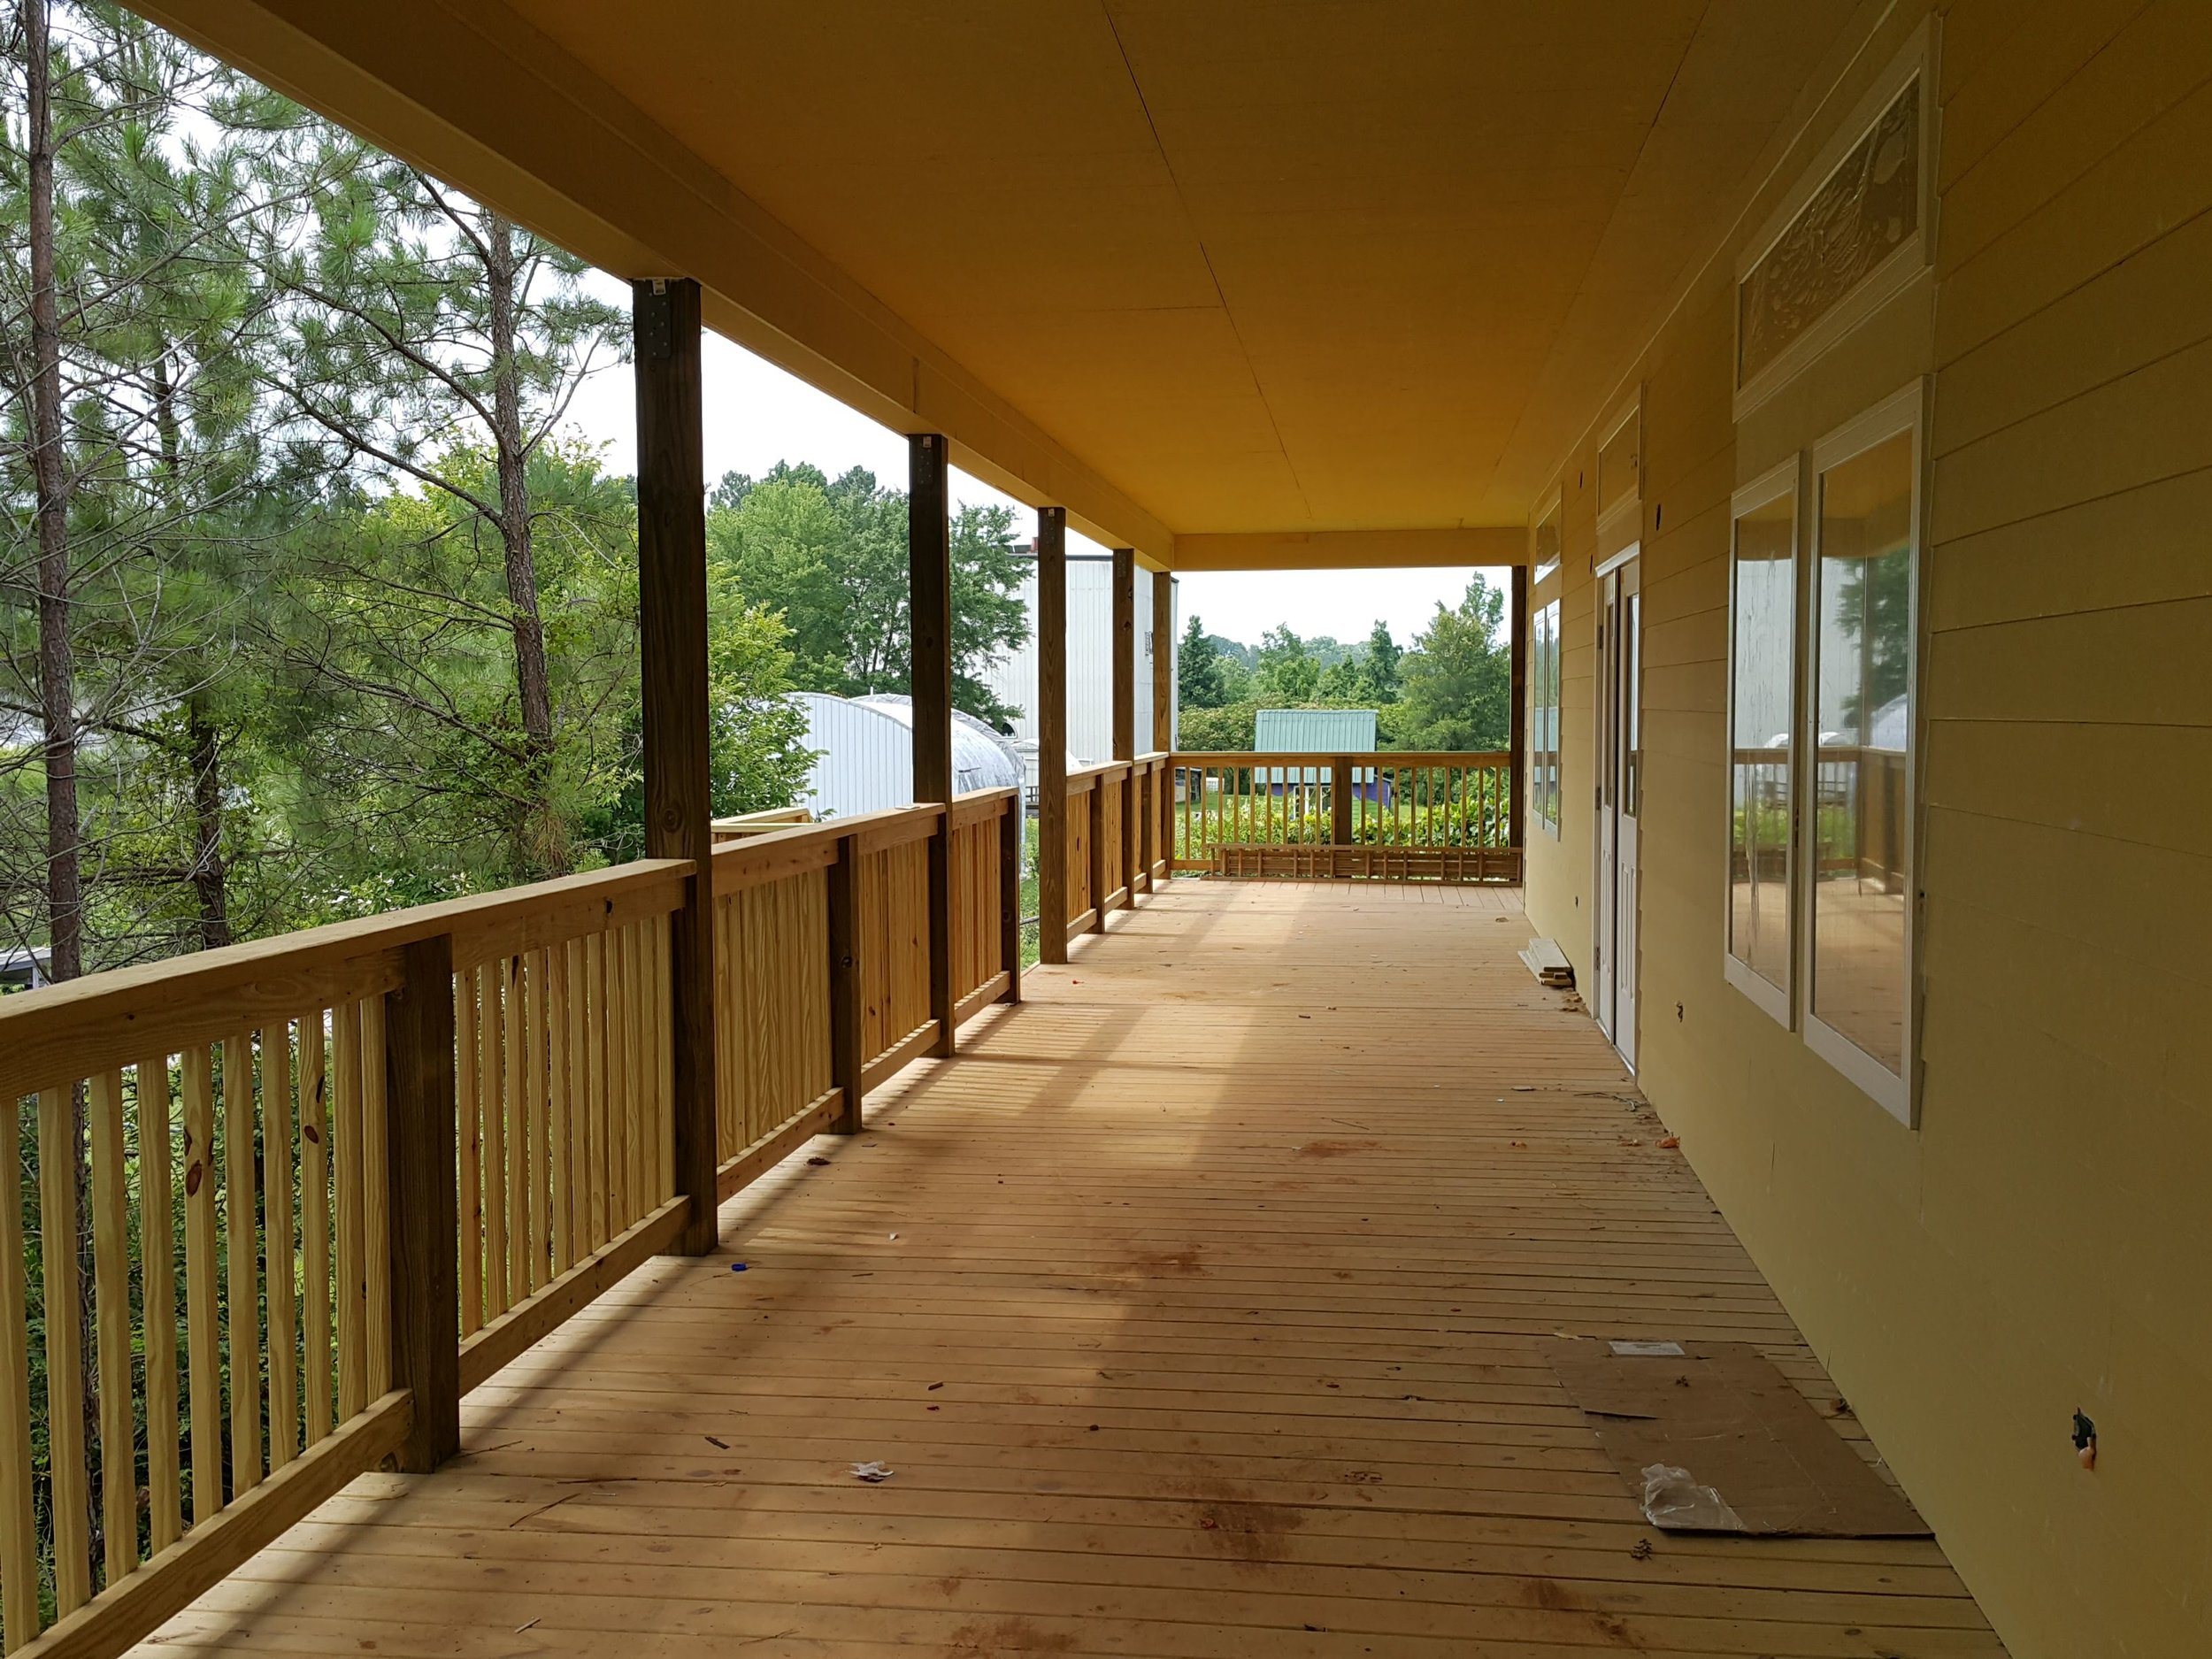 New View of the Porch